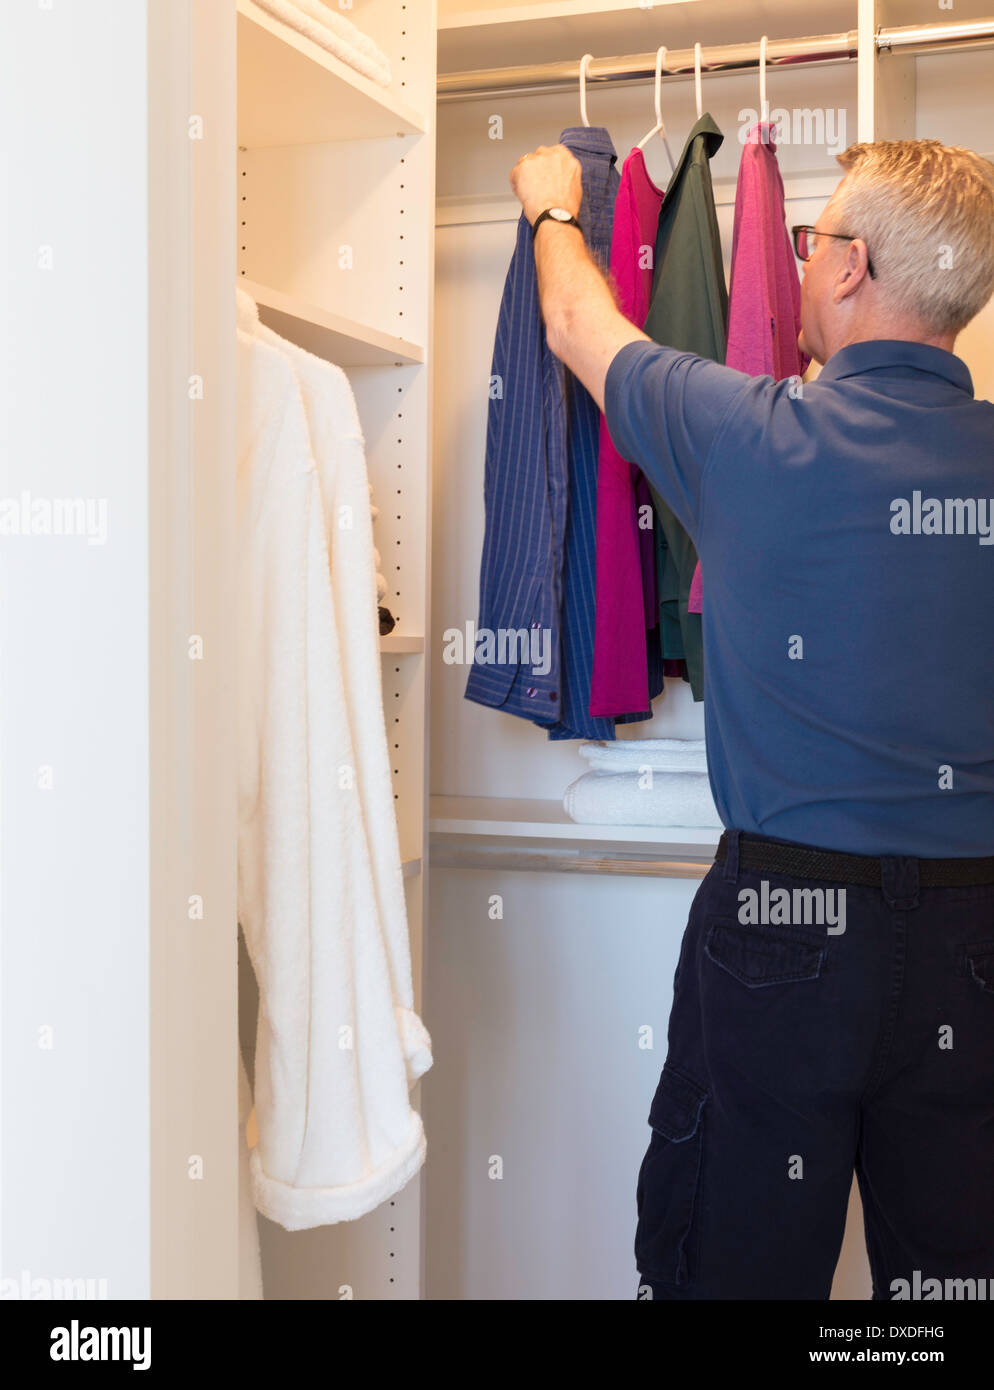 Beau Mature Man Reaching For Hanging Clothes In Walk In Closet, USA   Stock Image